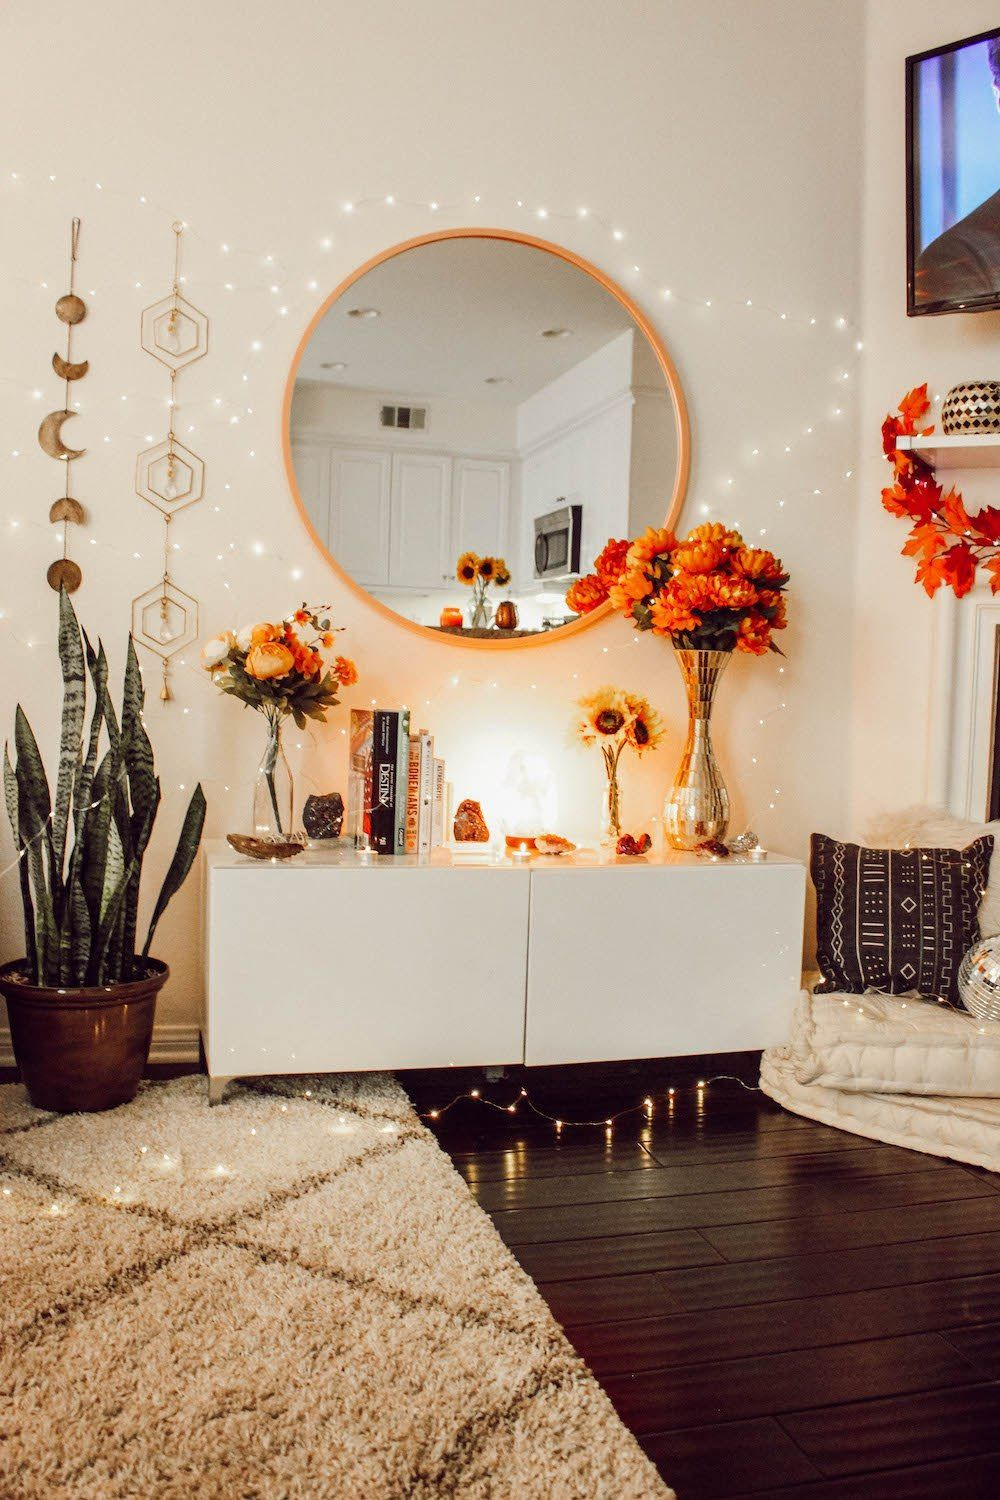 Cheap Decorating Ideas For Living Room Walls Wall Decor On A Budget Cheap Decorating Ideas For Small Apartm Fall Bedroom Decor Bedroom Decor Bedroom Design